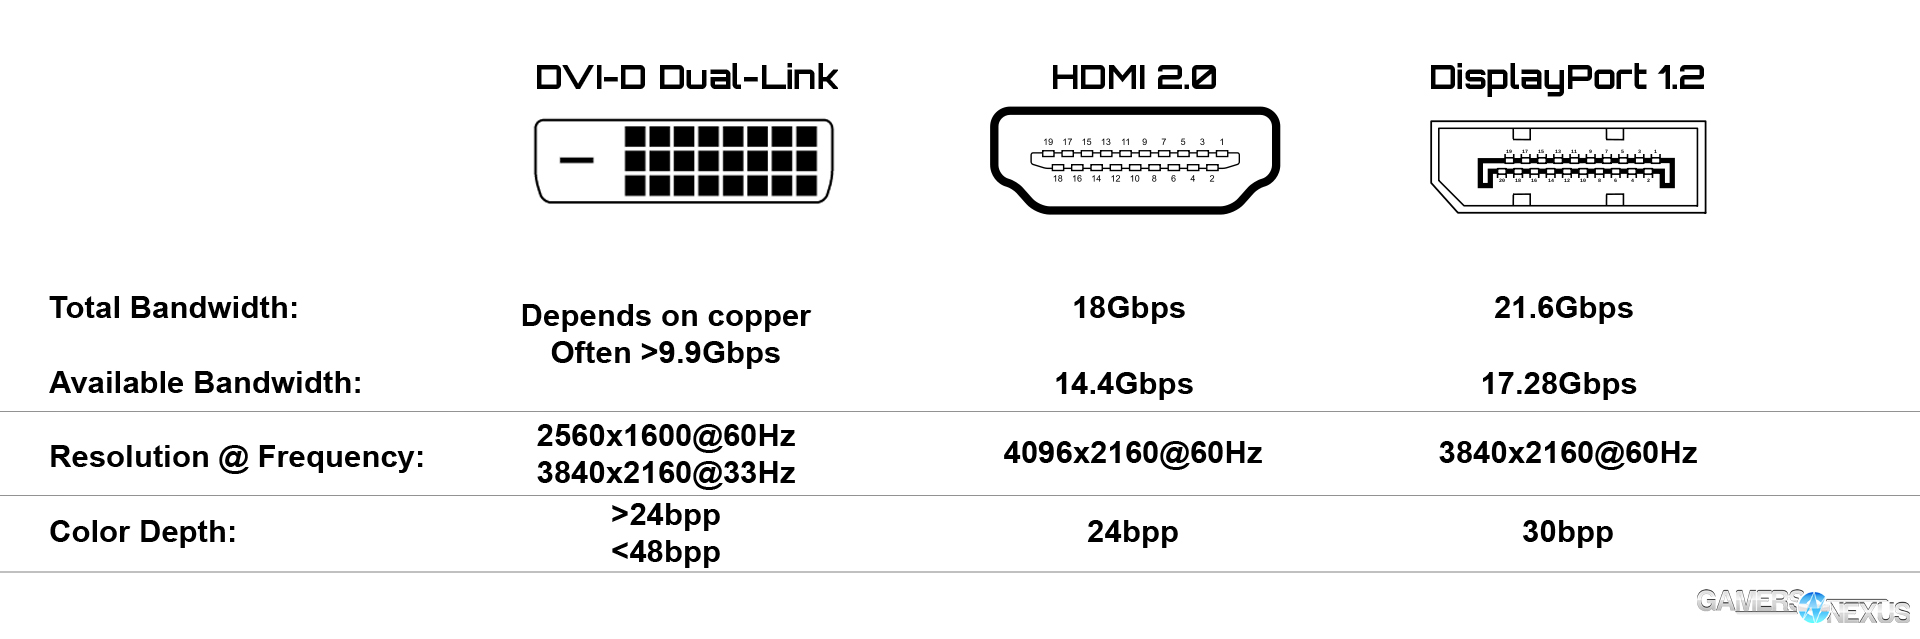 cables  dvi differences  hdmi vs  displayport  sata ii vs